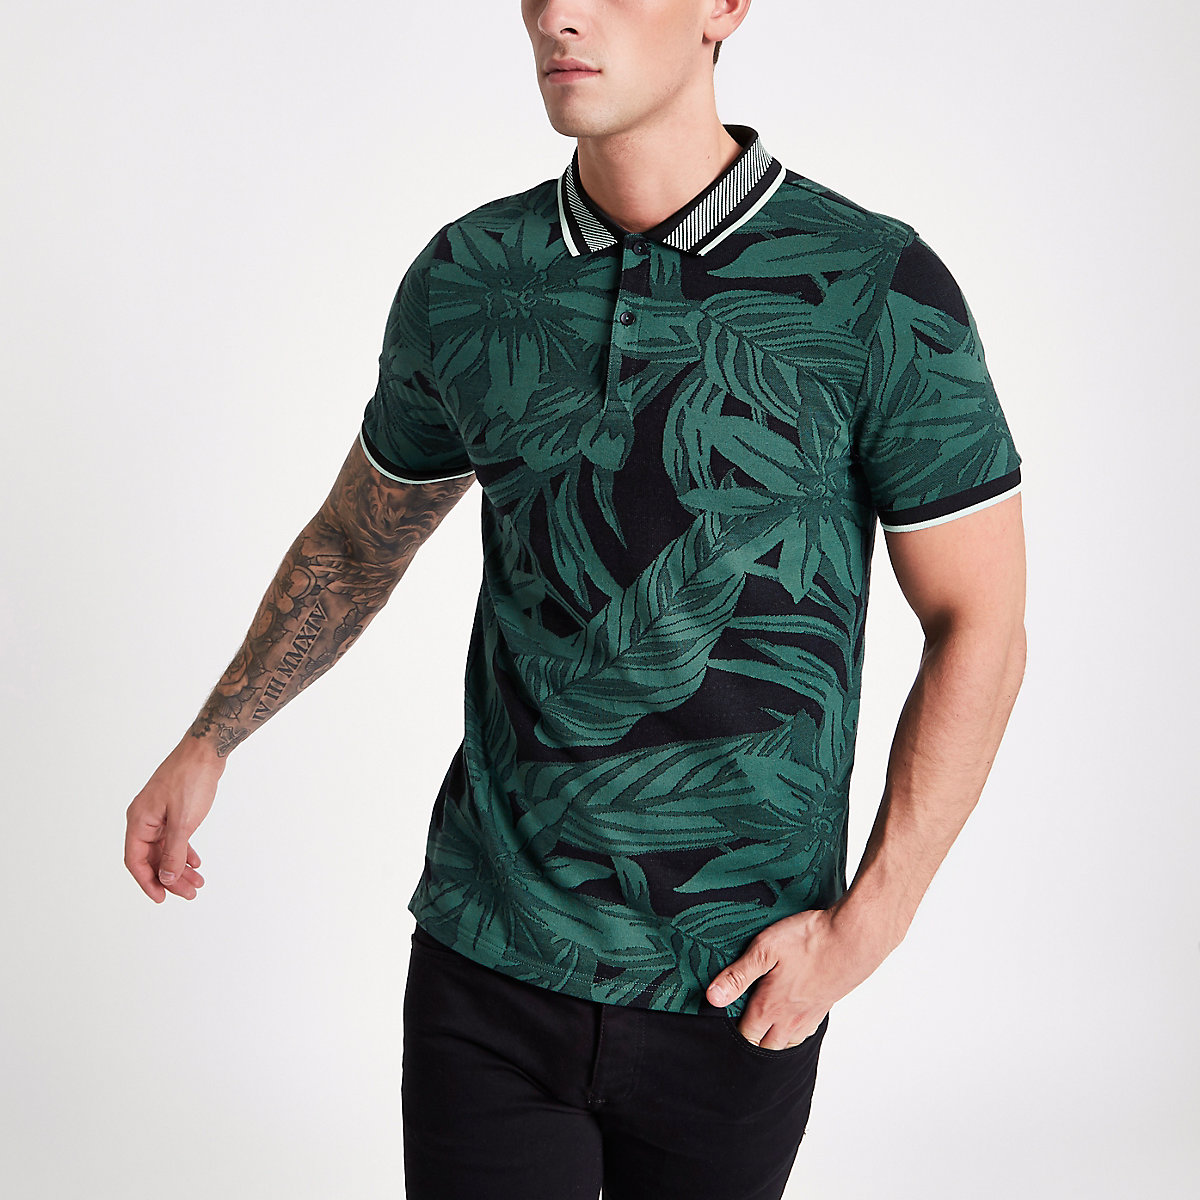 Green floral jacquard muscle fit polo shirt